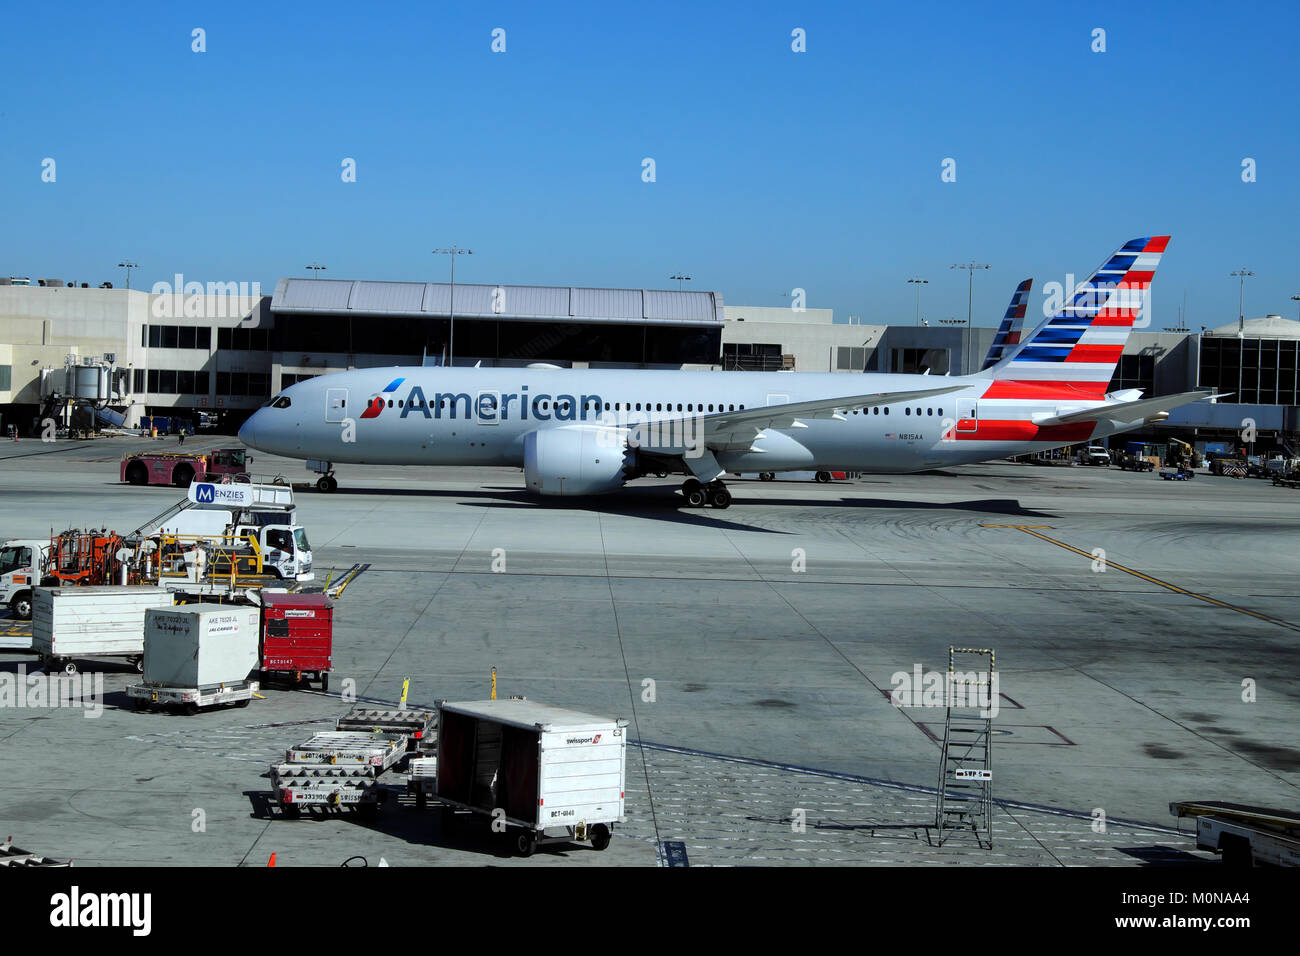 American Airlines plane standing on the tarmac being serviced prior to takeoff at LAX airport Los Angeles, California - Stock Image